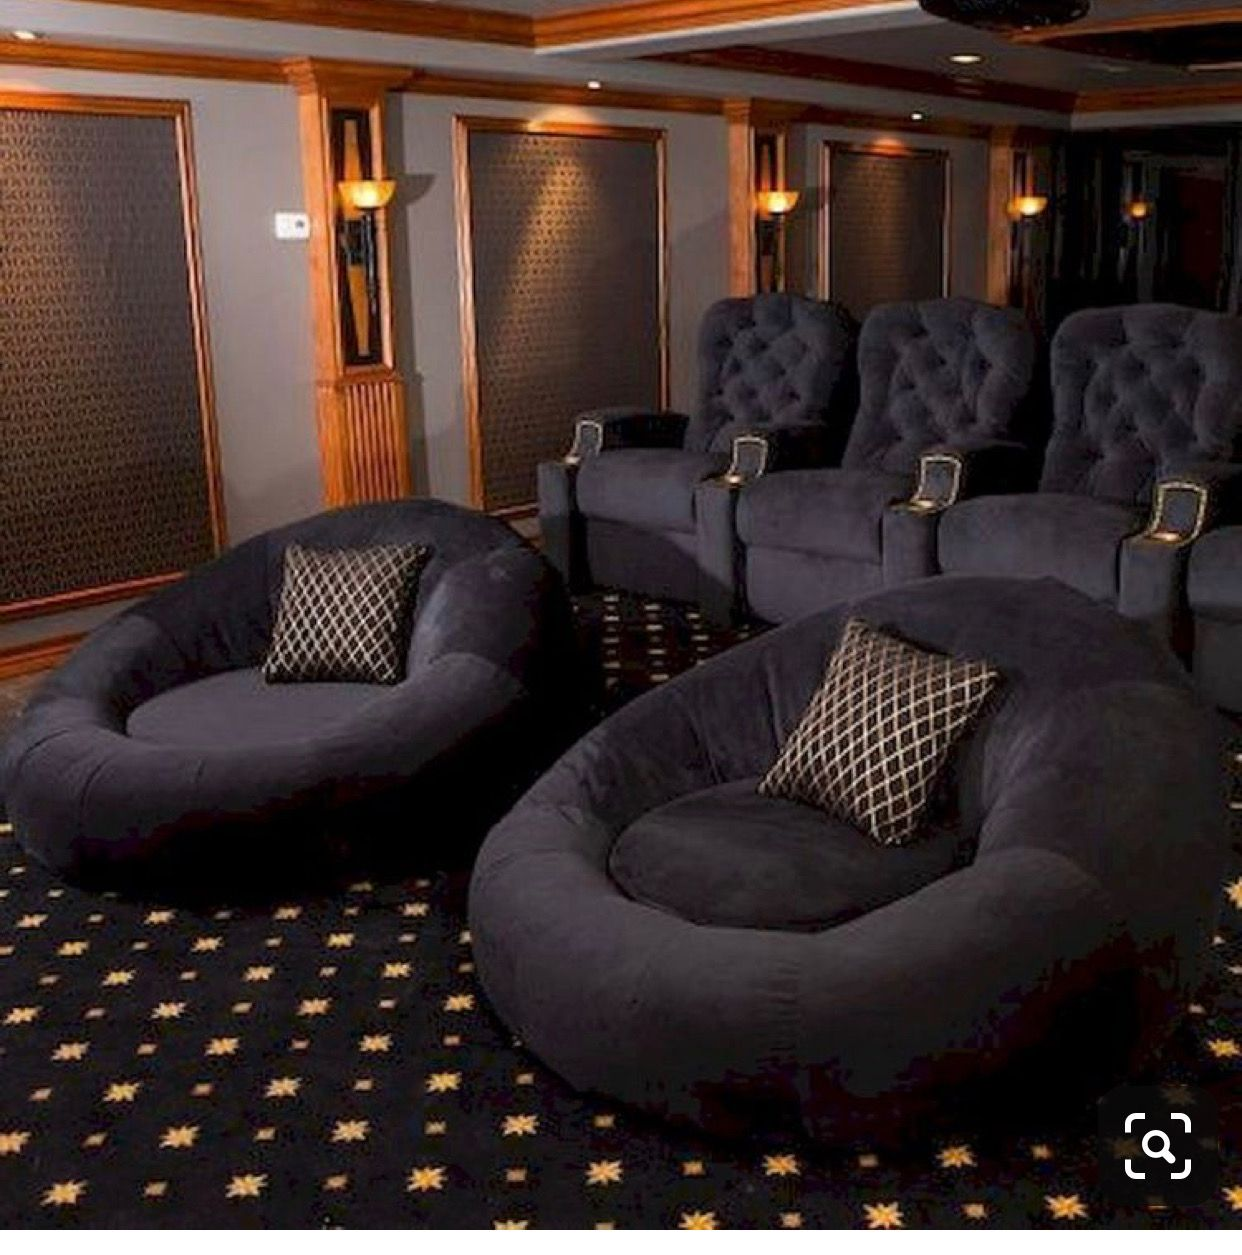 Pin By Alexandria Guzman On Movie Theater Room Ideas In 2020 Home Cinema Room Home Theater Seating Small Living Room Decor